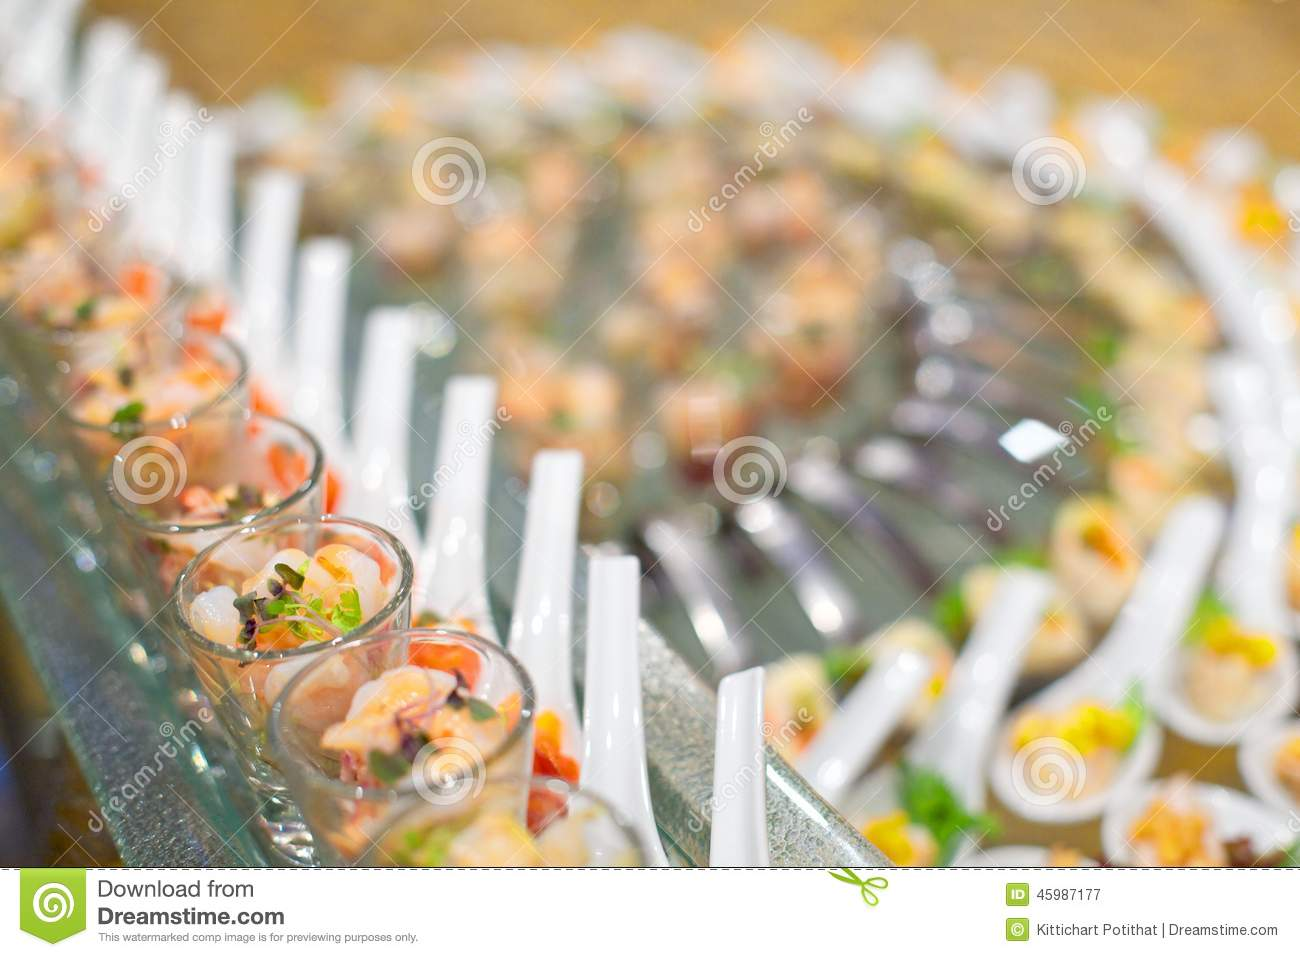 Catering canap for Catering canape